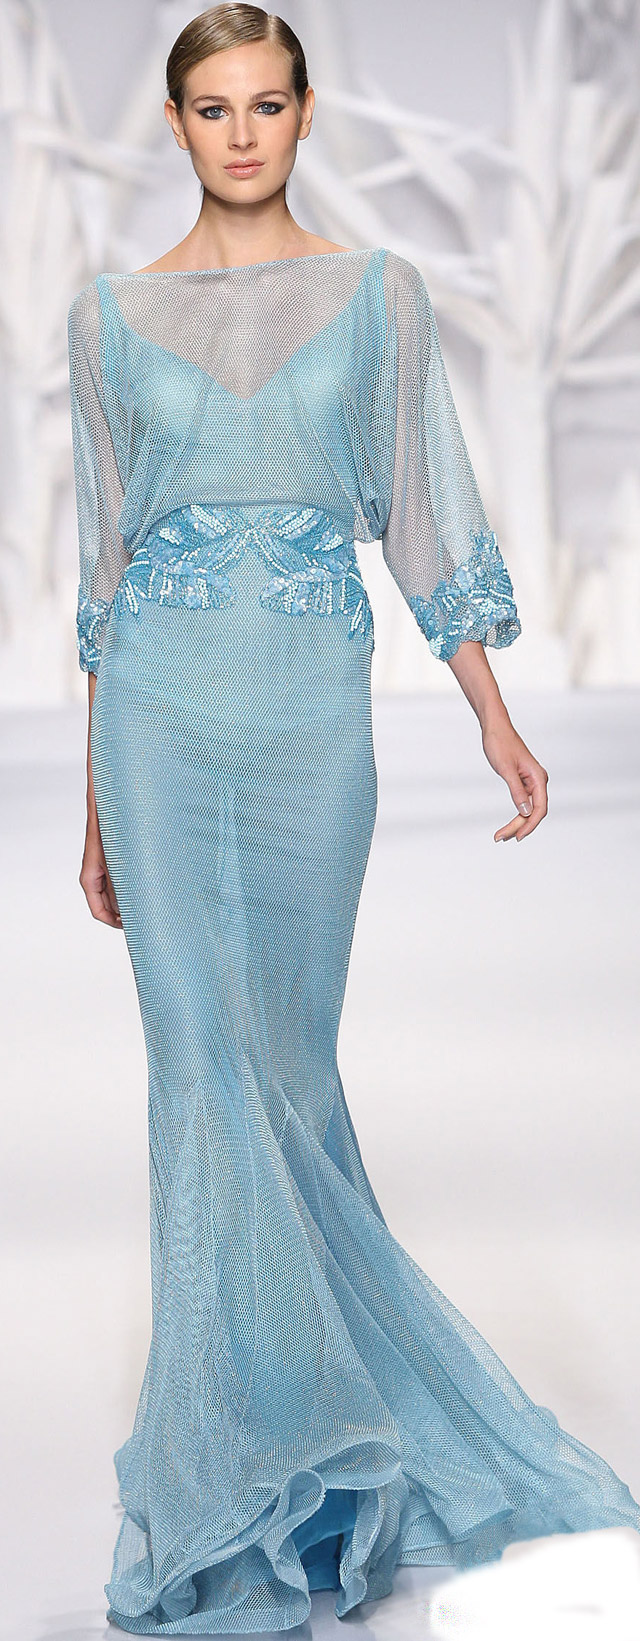 Abed Mahfouz Haute Couture Fall-Winter 2013-2014 (3)